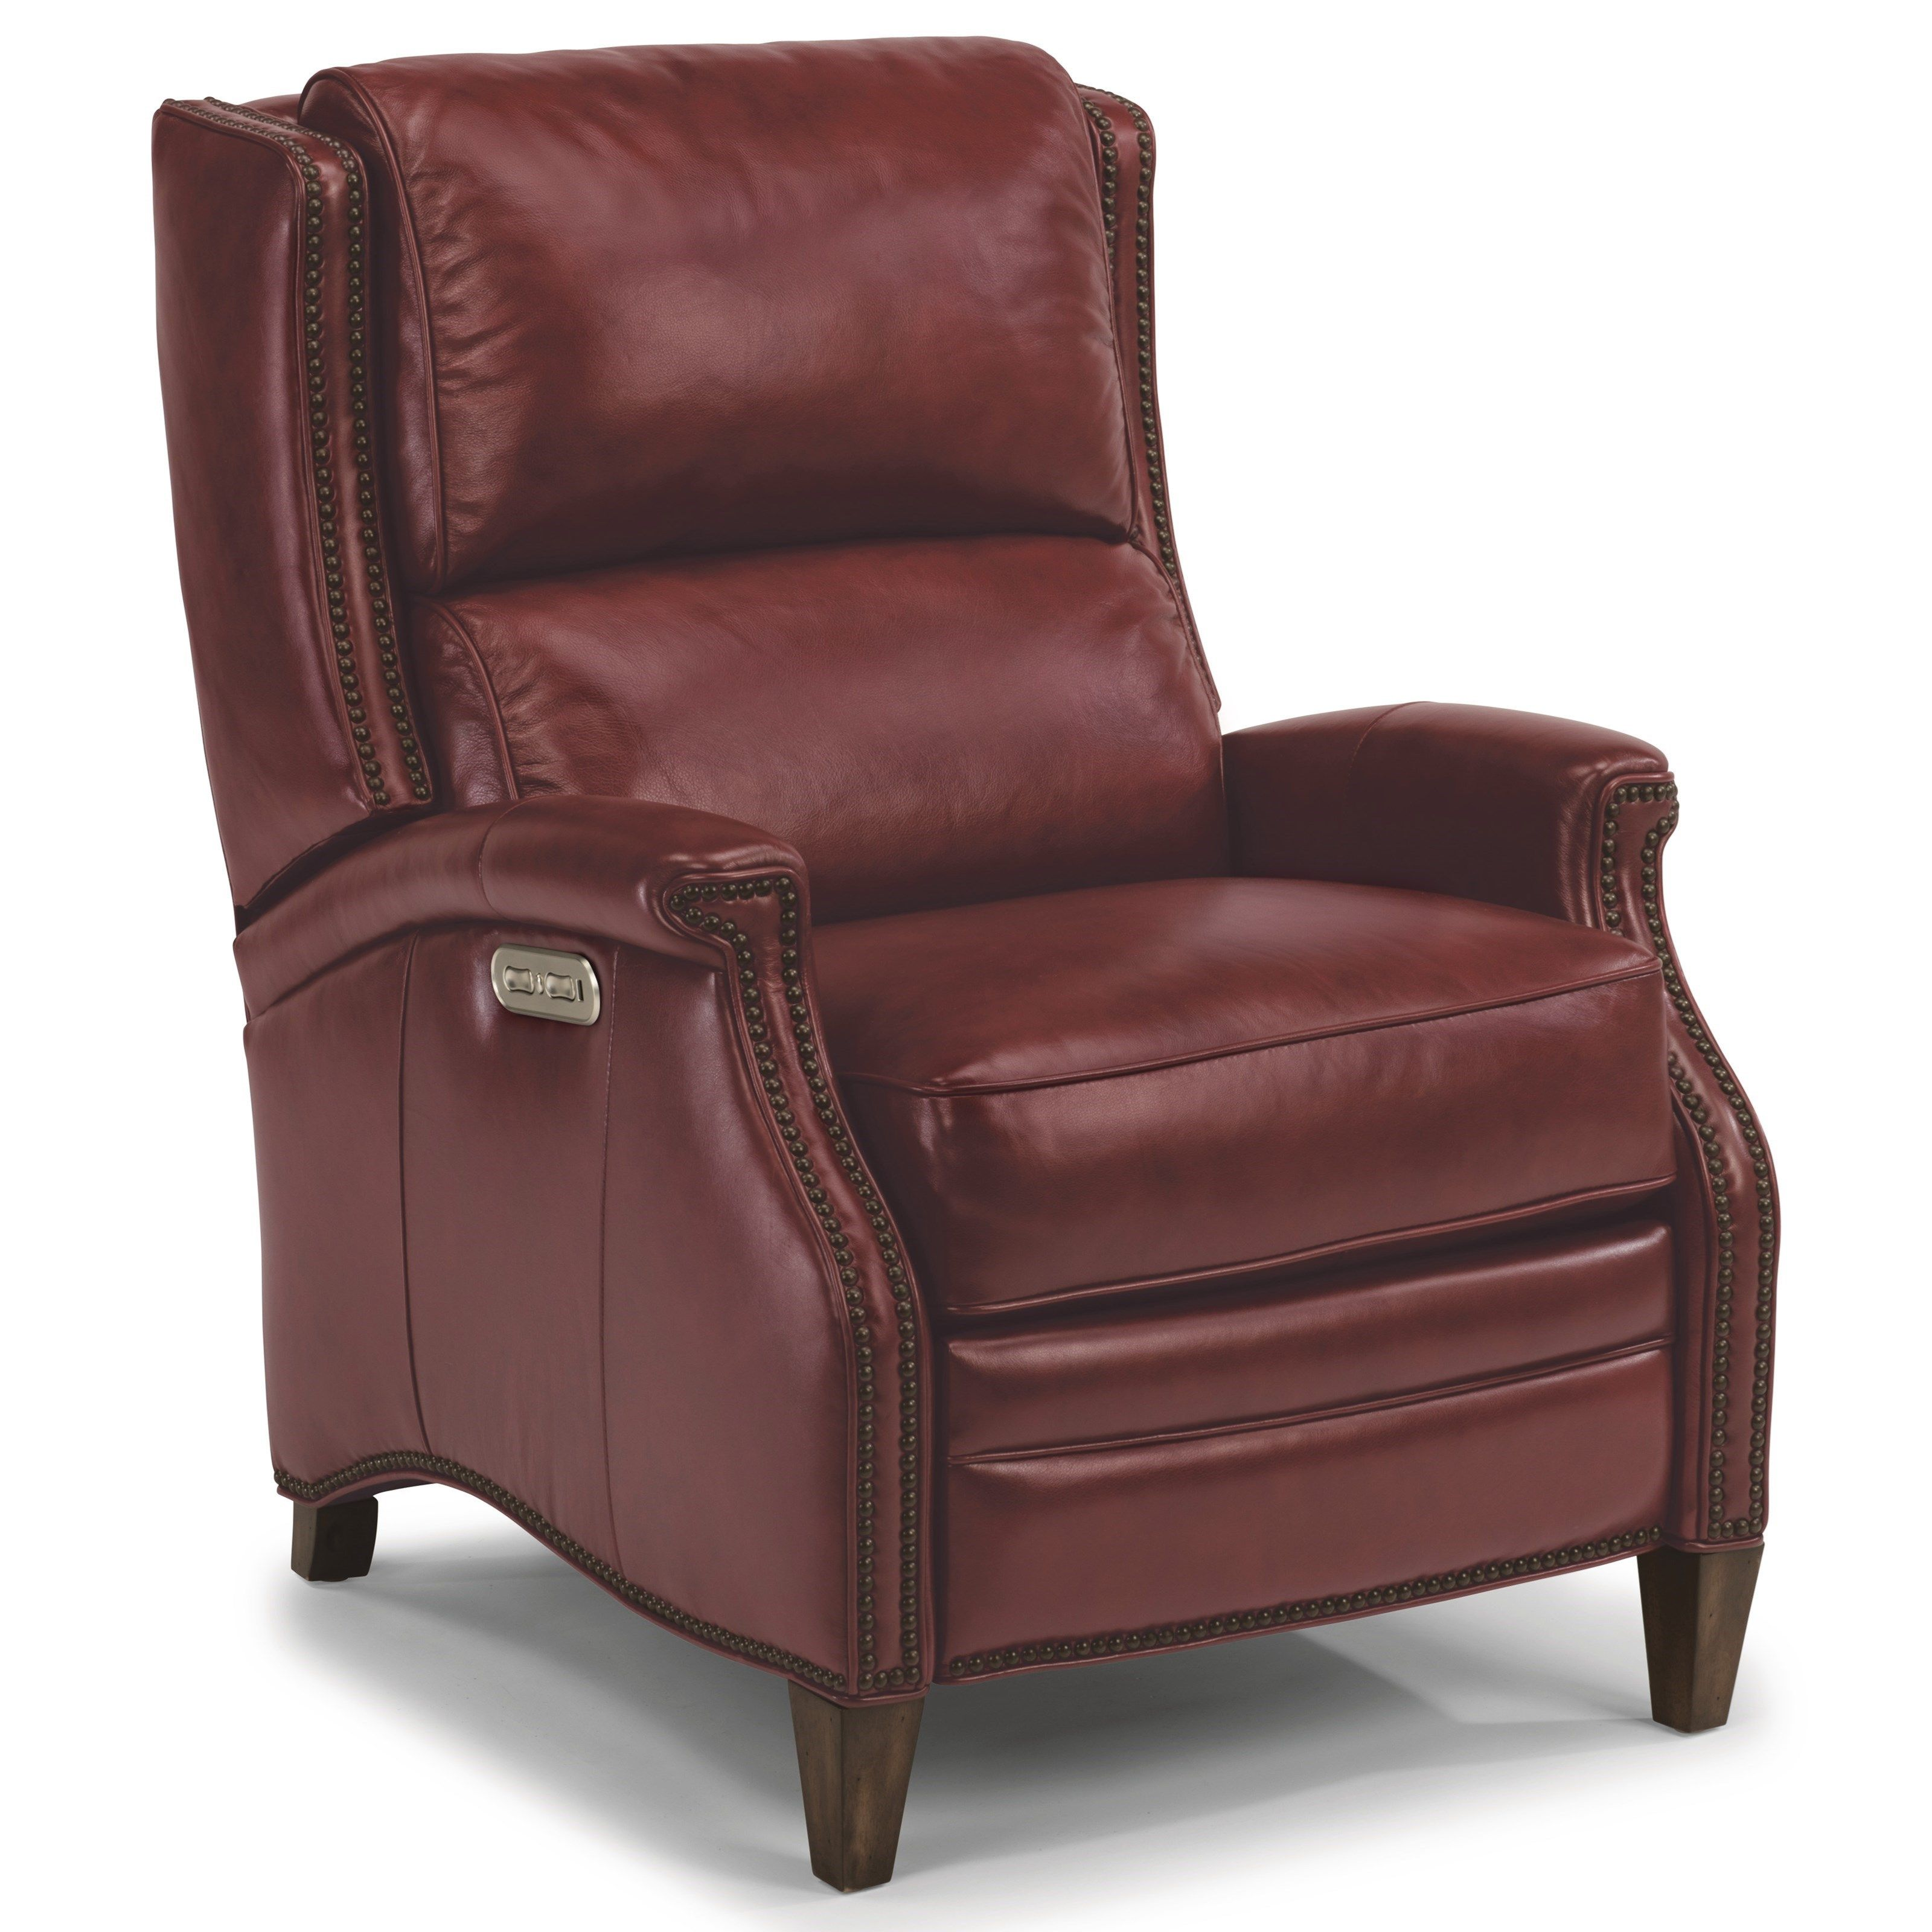 Fantastic Latitudes Bishop Transitional Power High Leg Recliner With Caraccident5 Cool Chair Designs And Ideas Caraccident5Info